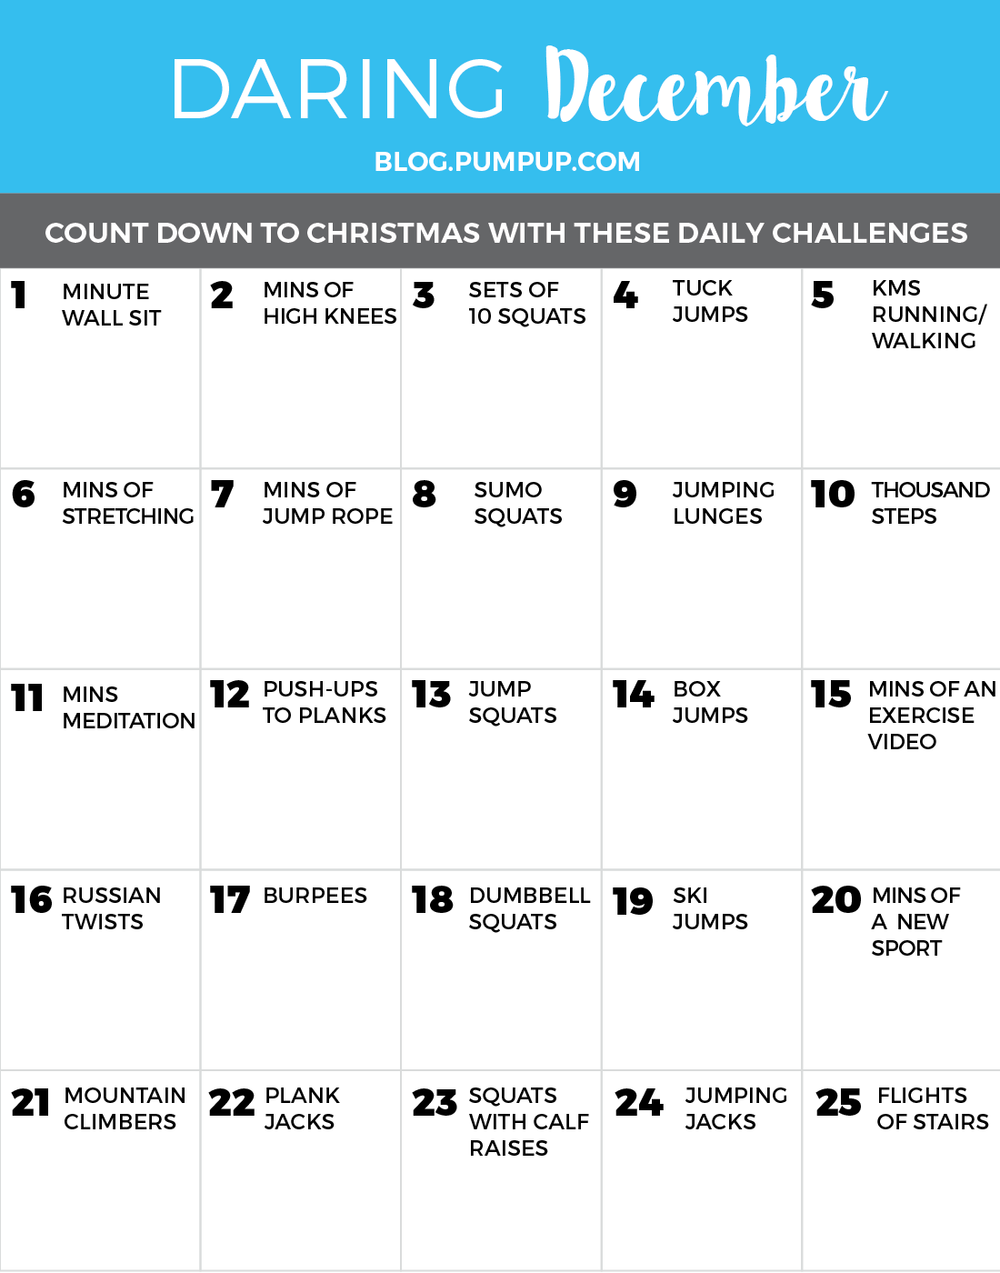 Details For The First 15 Days Of Challenge Can Be Found Below